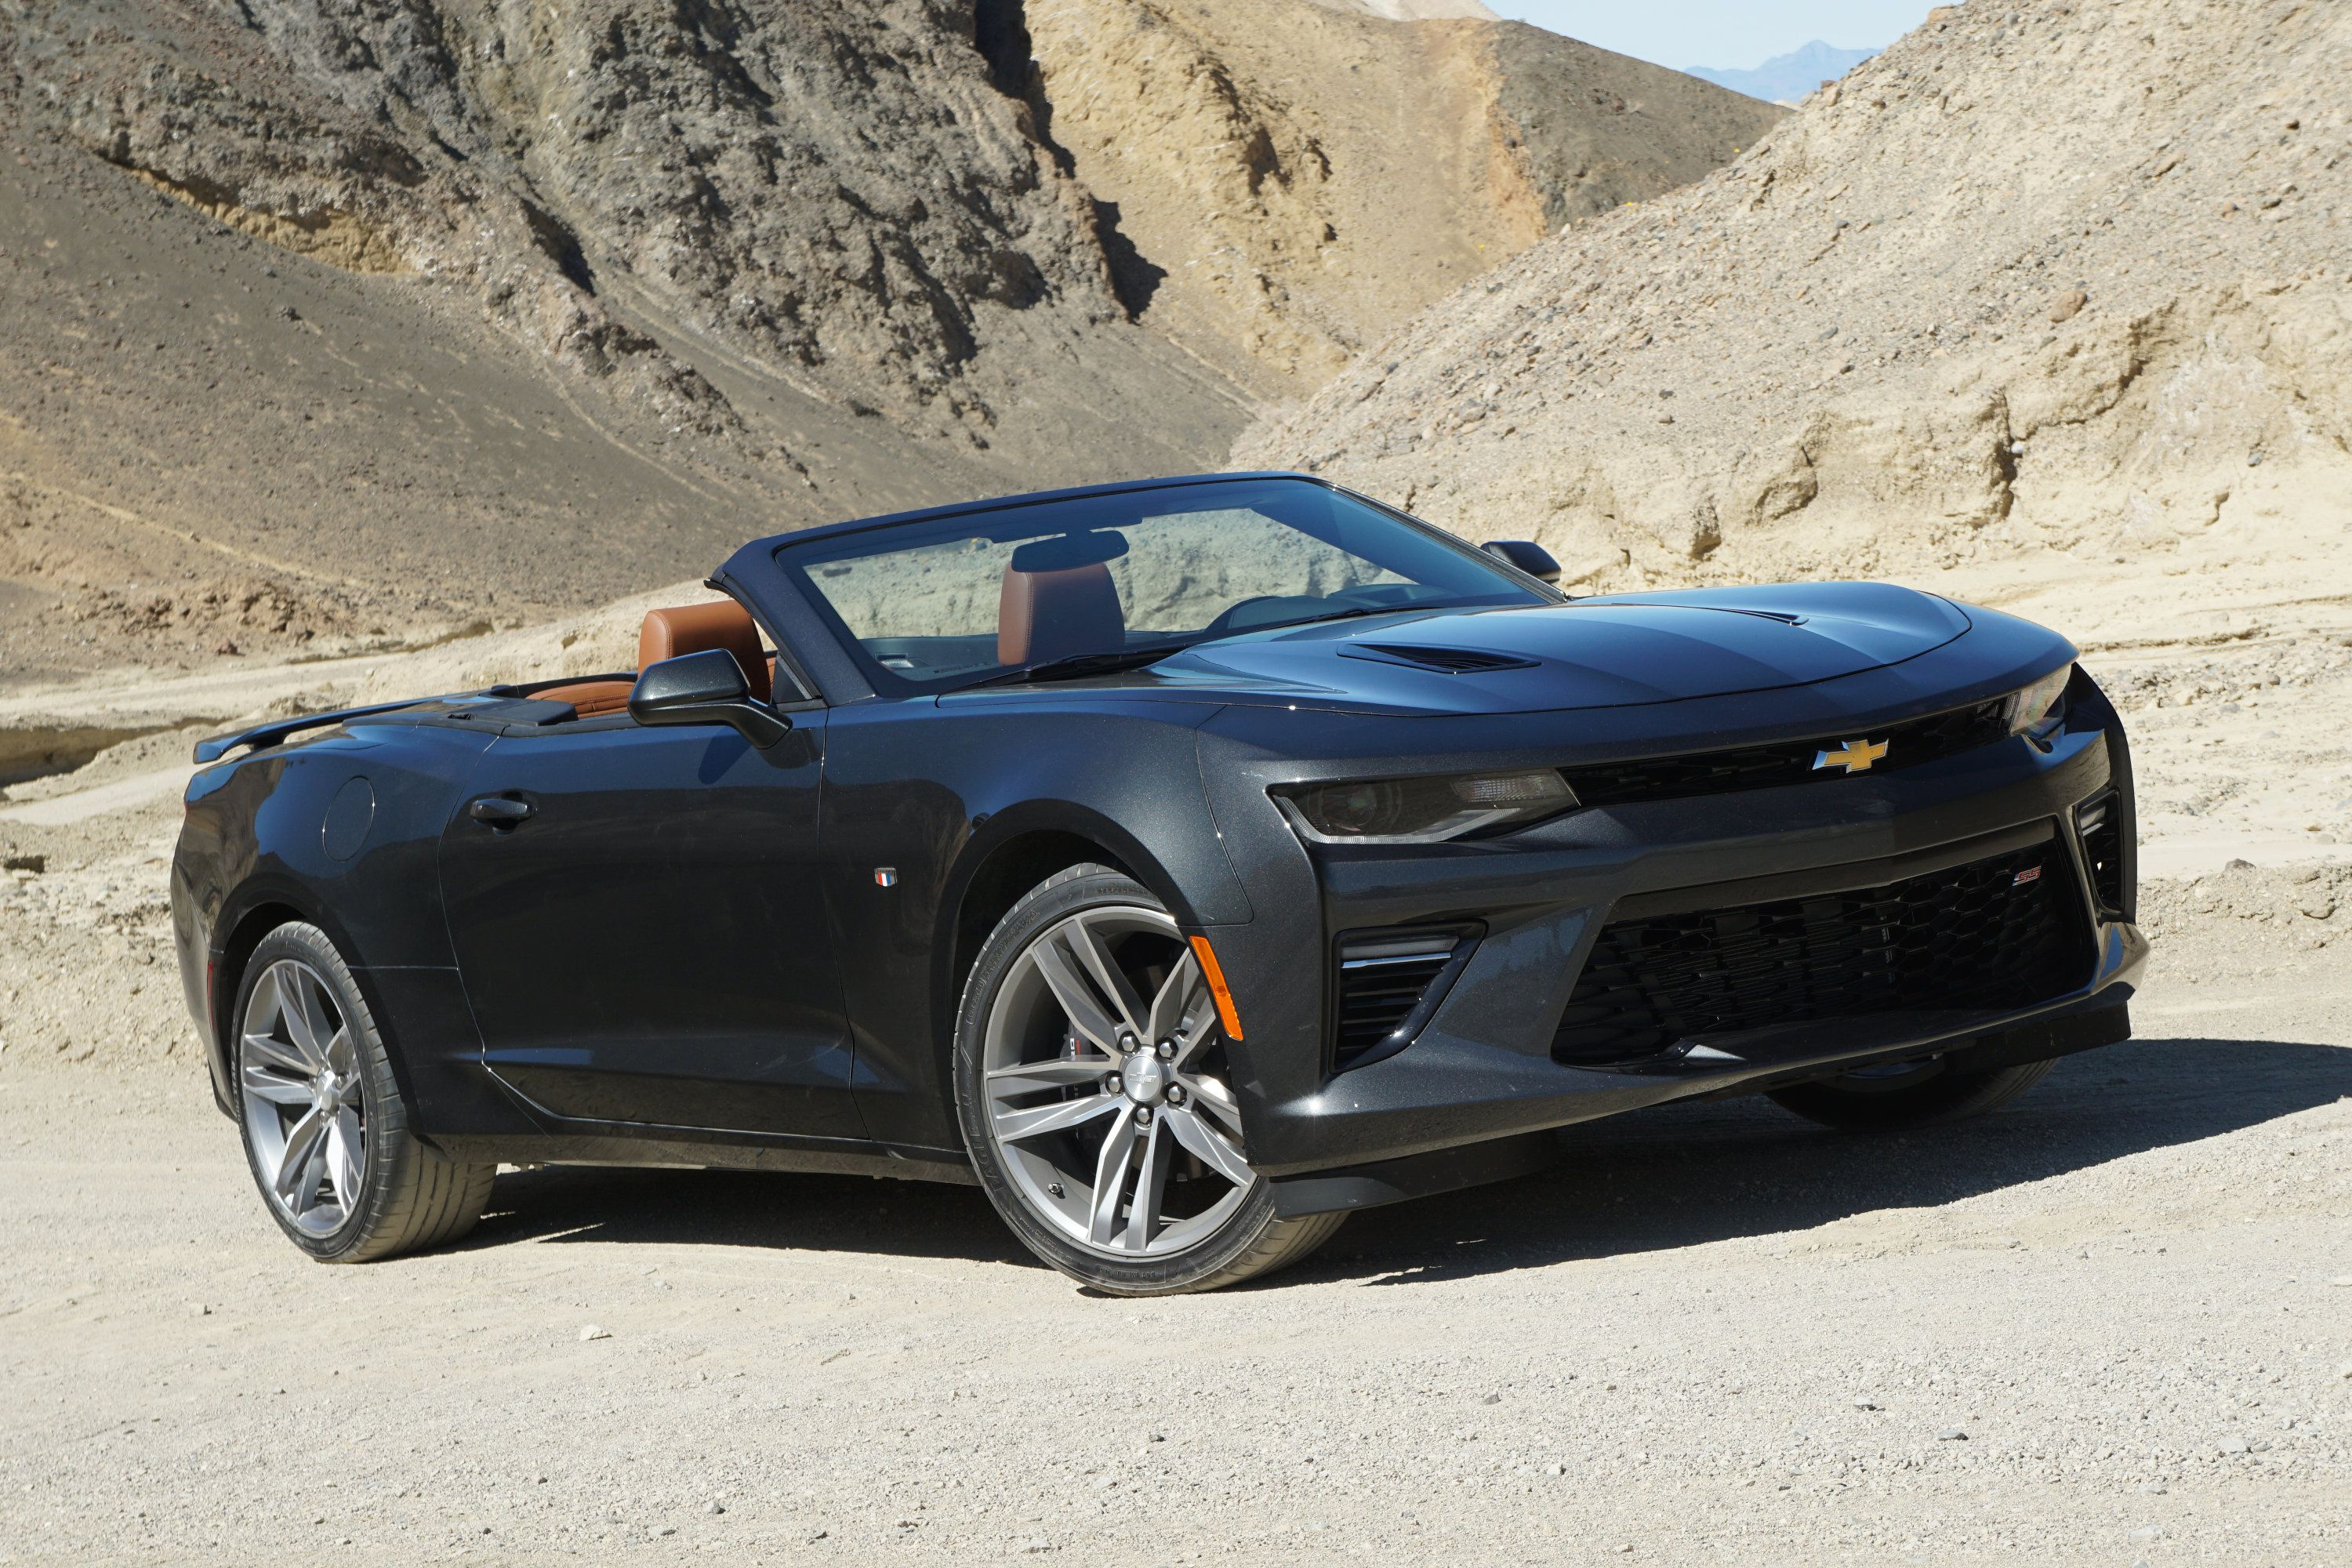 2016 Chevrolet Camaro Convertible photo tour